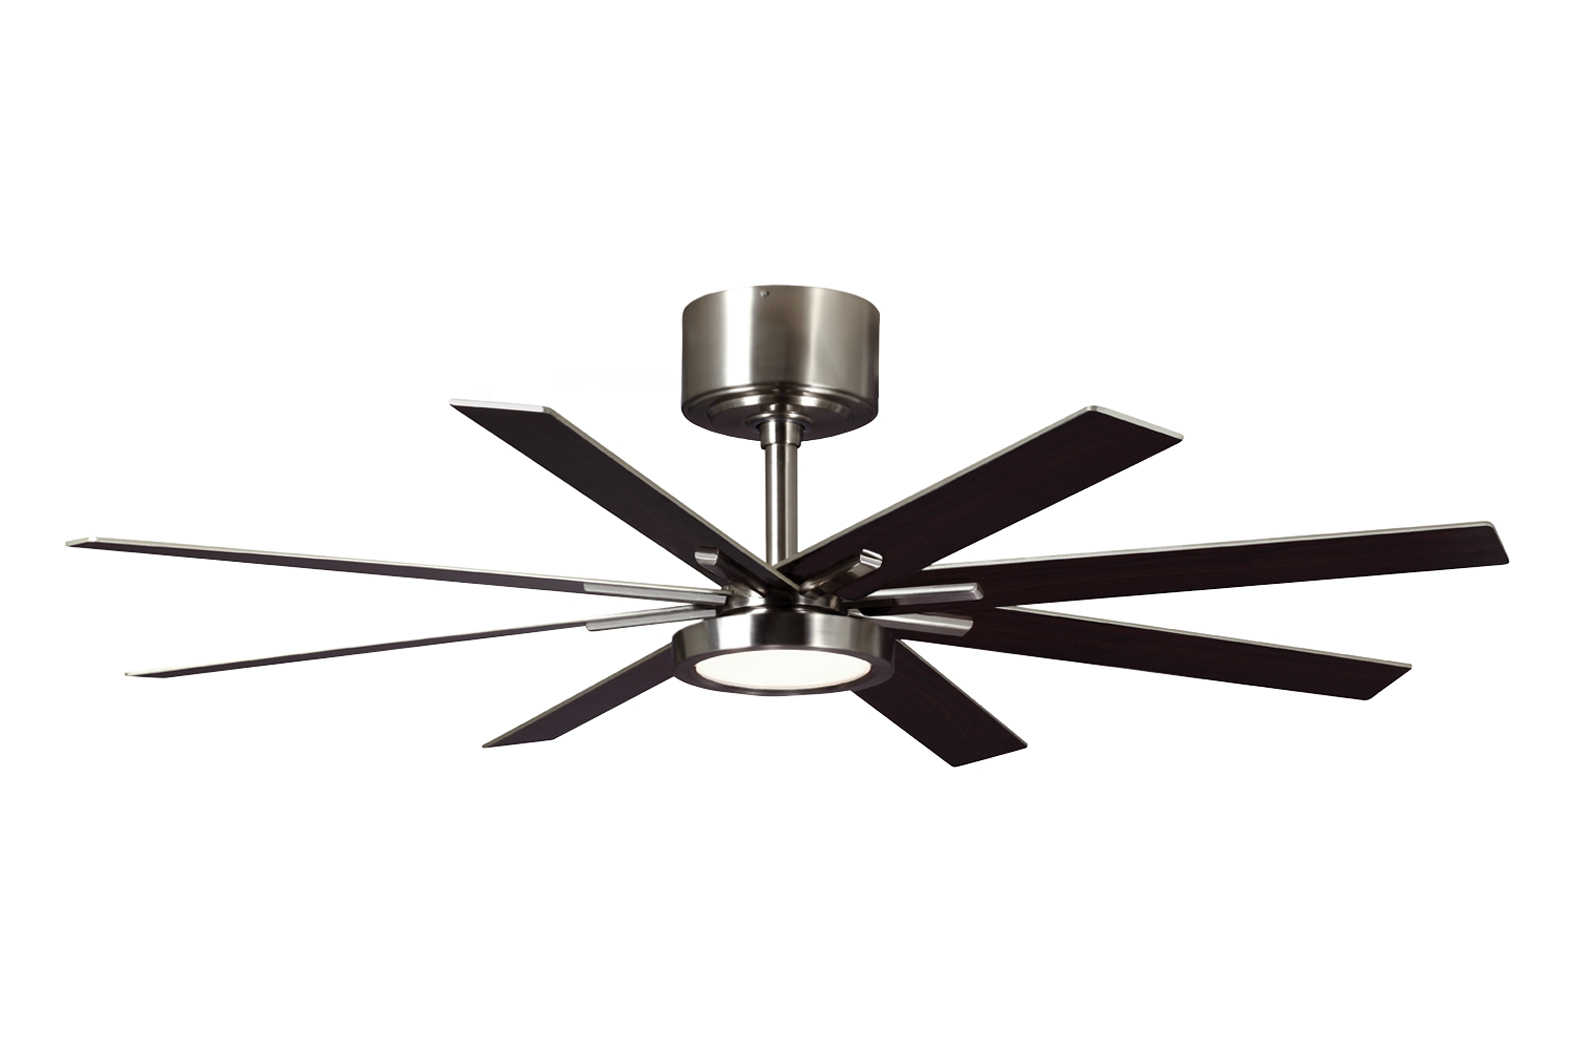 light northport fans home with nickel bay depot brushed indoor ceiling the silver hampton lights kit p in fan